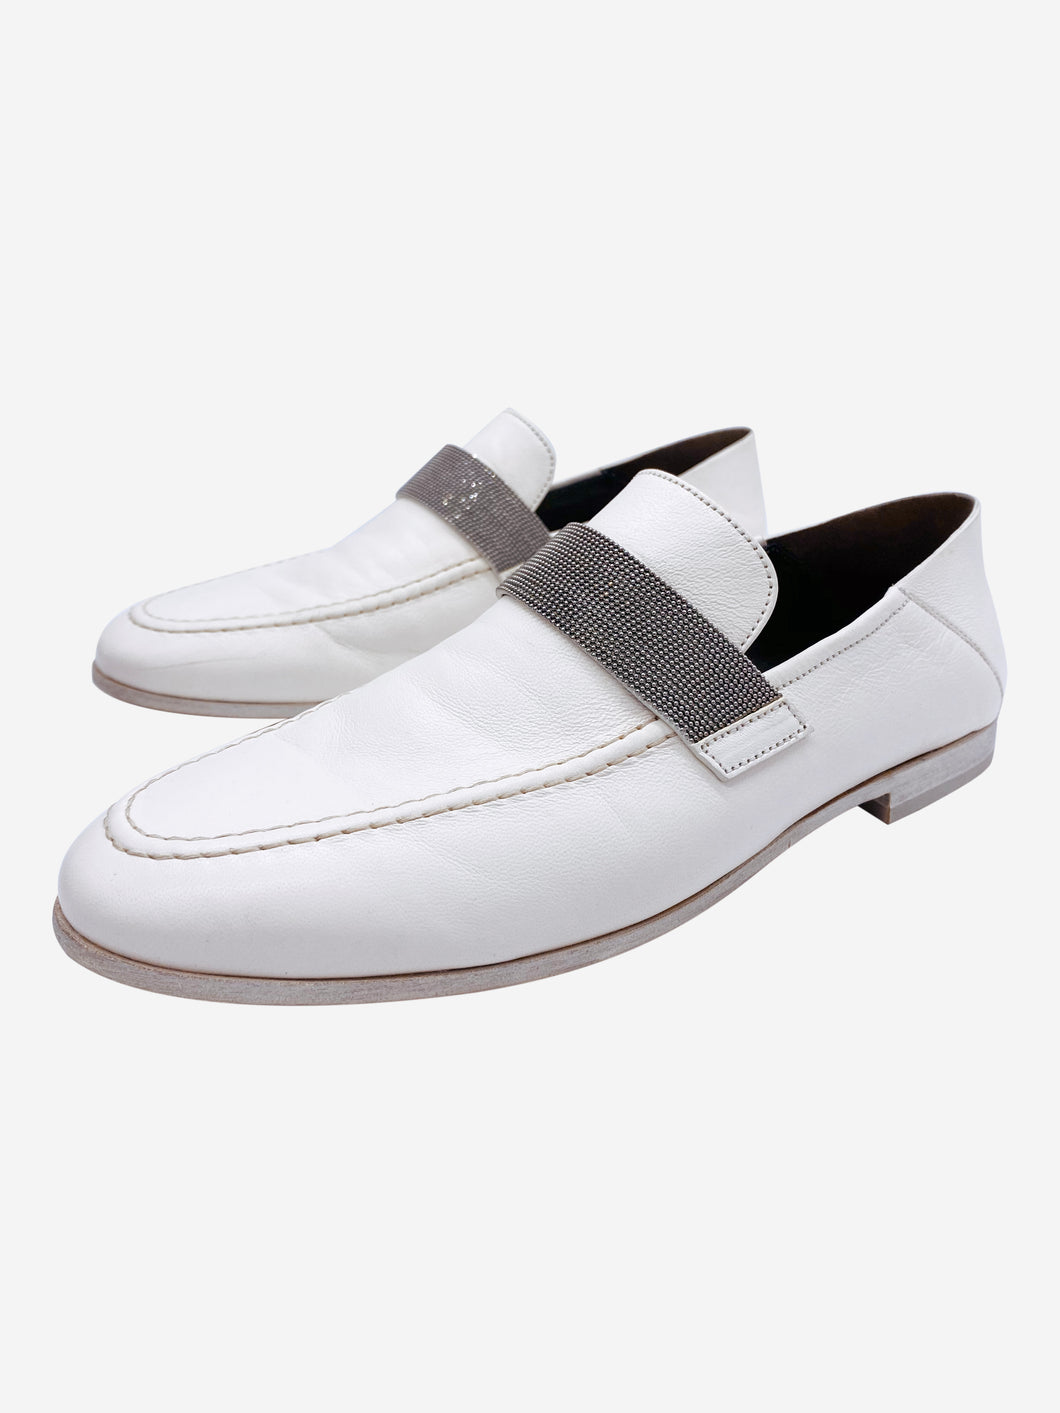 White Brunello Cucinelli Shoes, 5